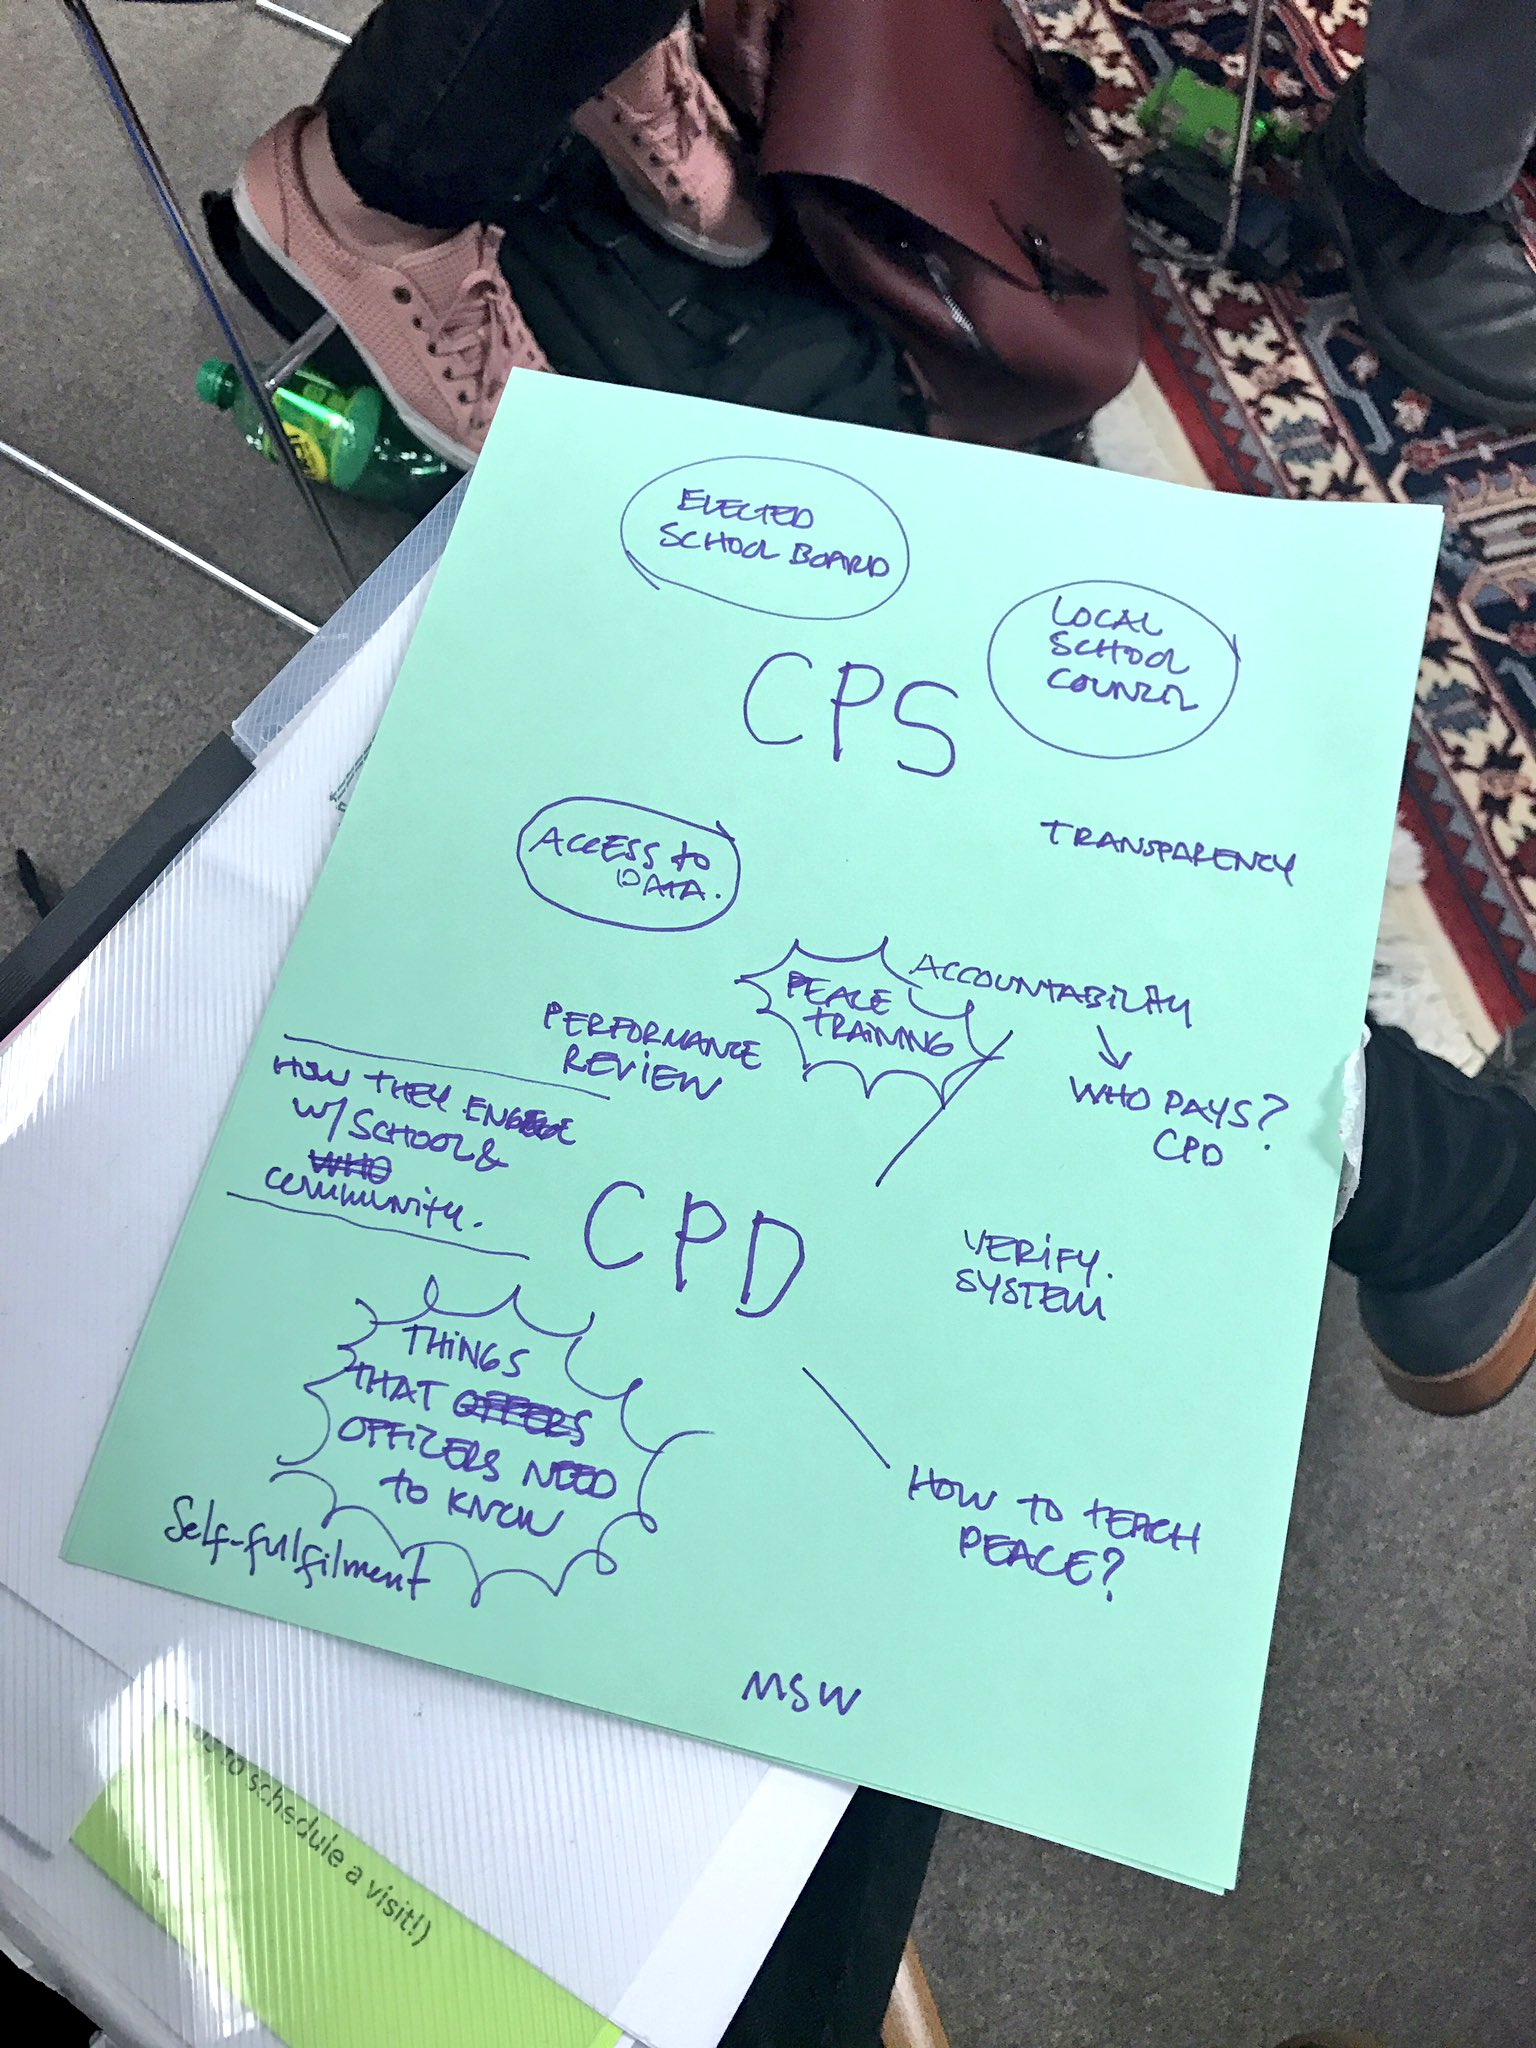 Some groups at the #publicnewsroom are redesigning CPD and CPS relations to inform an MOU. What would you include? https://t.co/ipQShPDkAs